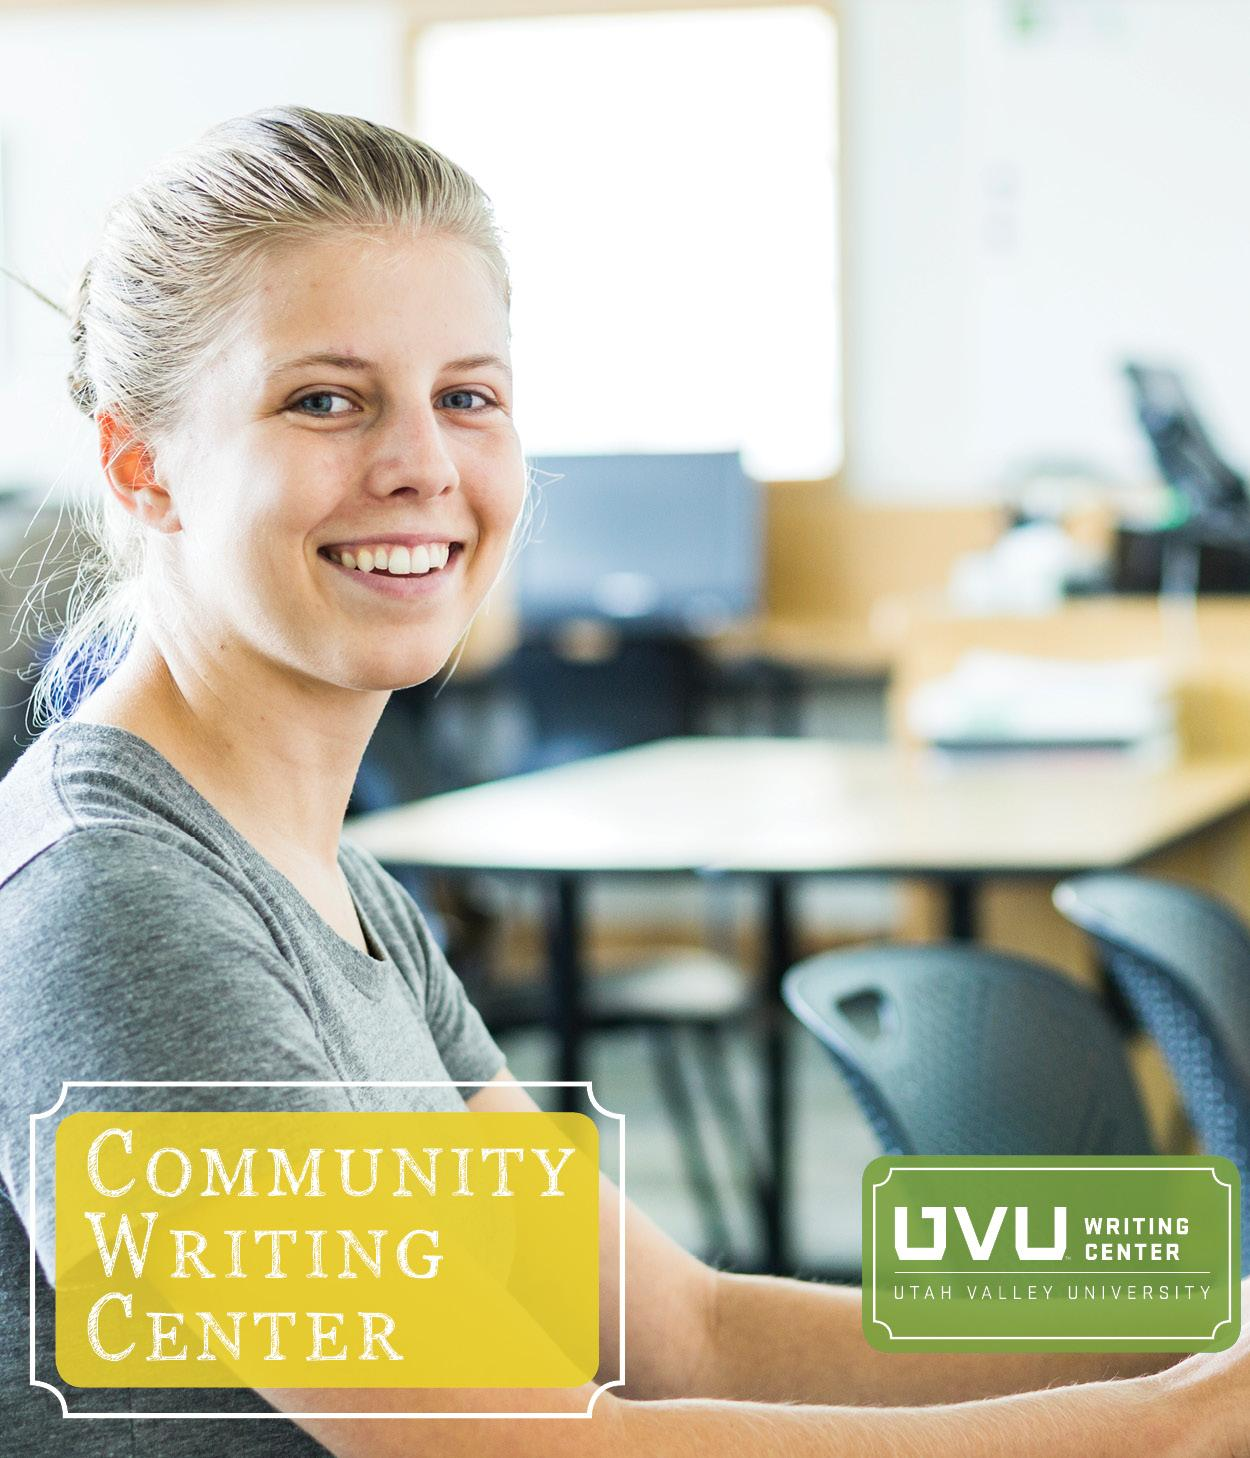 Image of student using a writing center computerLink to Community Writing Center page